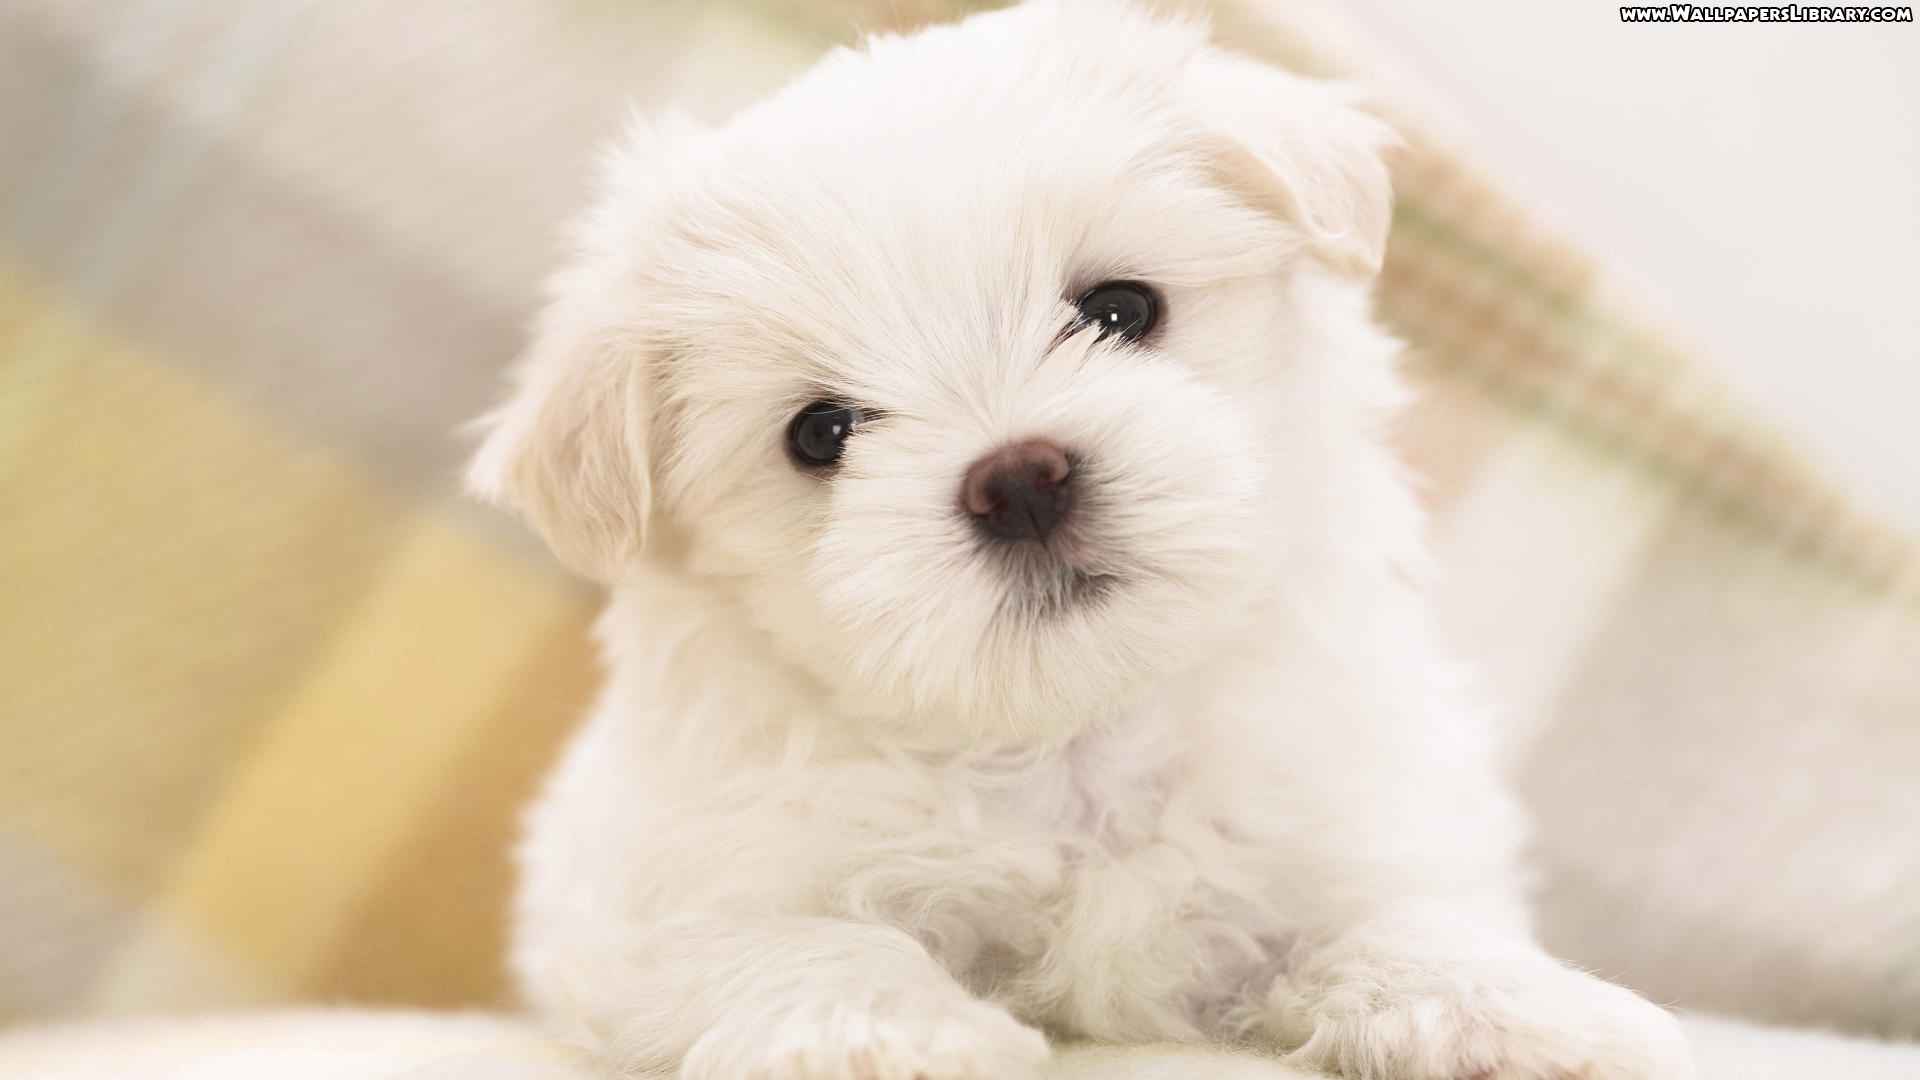 1000+ ideas about Cute Puppy Wallpaper on Pinterest | Very cute